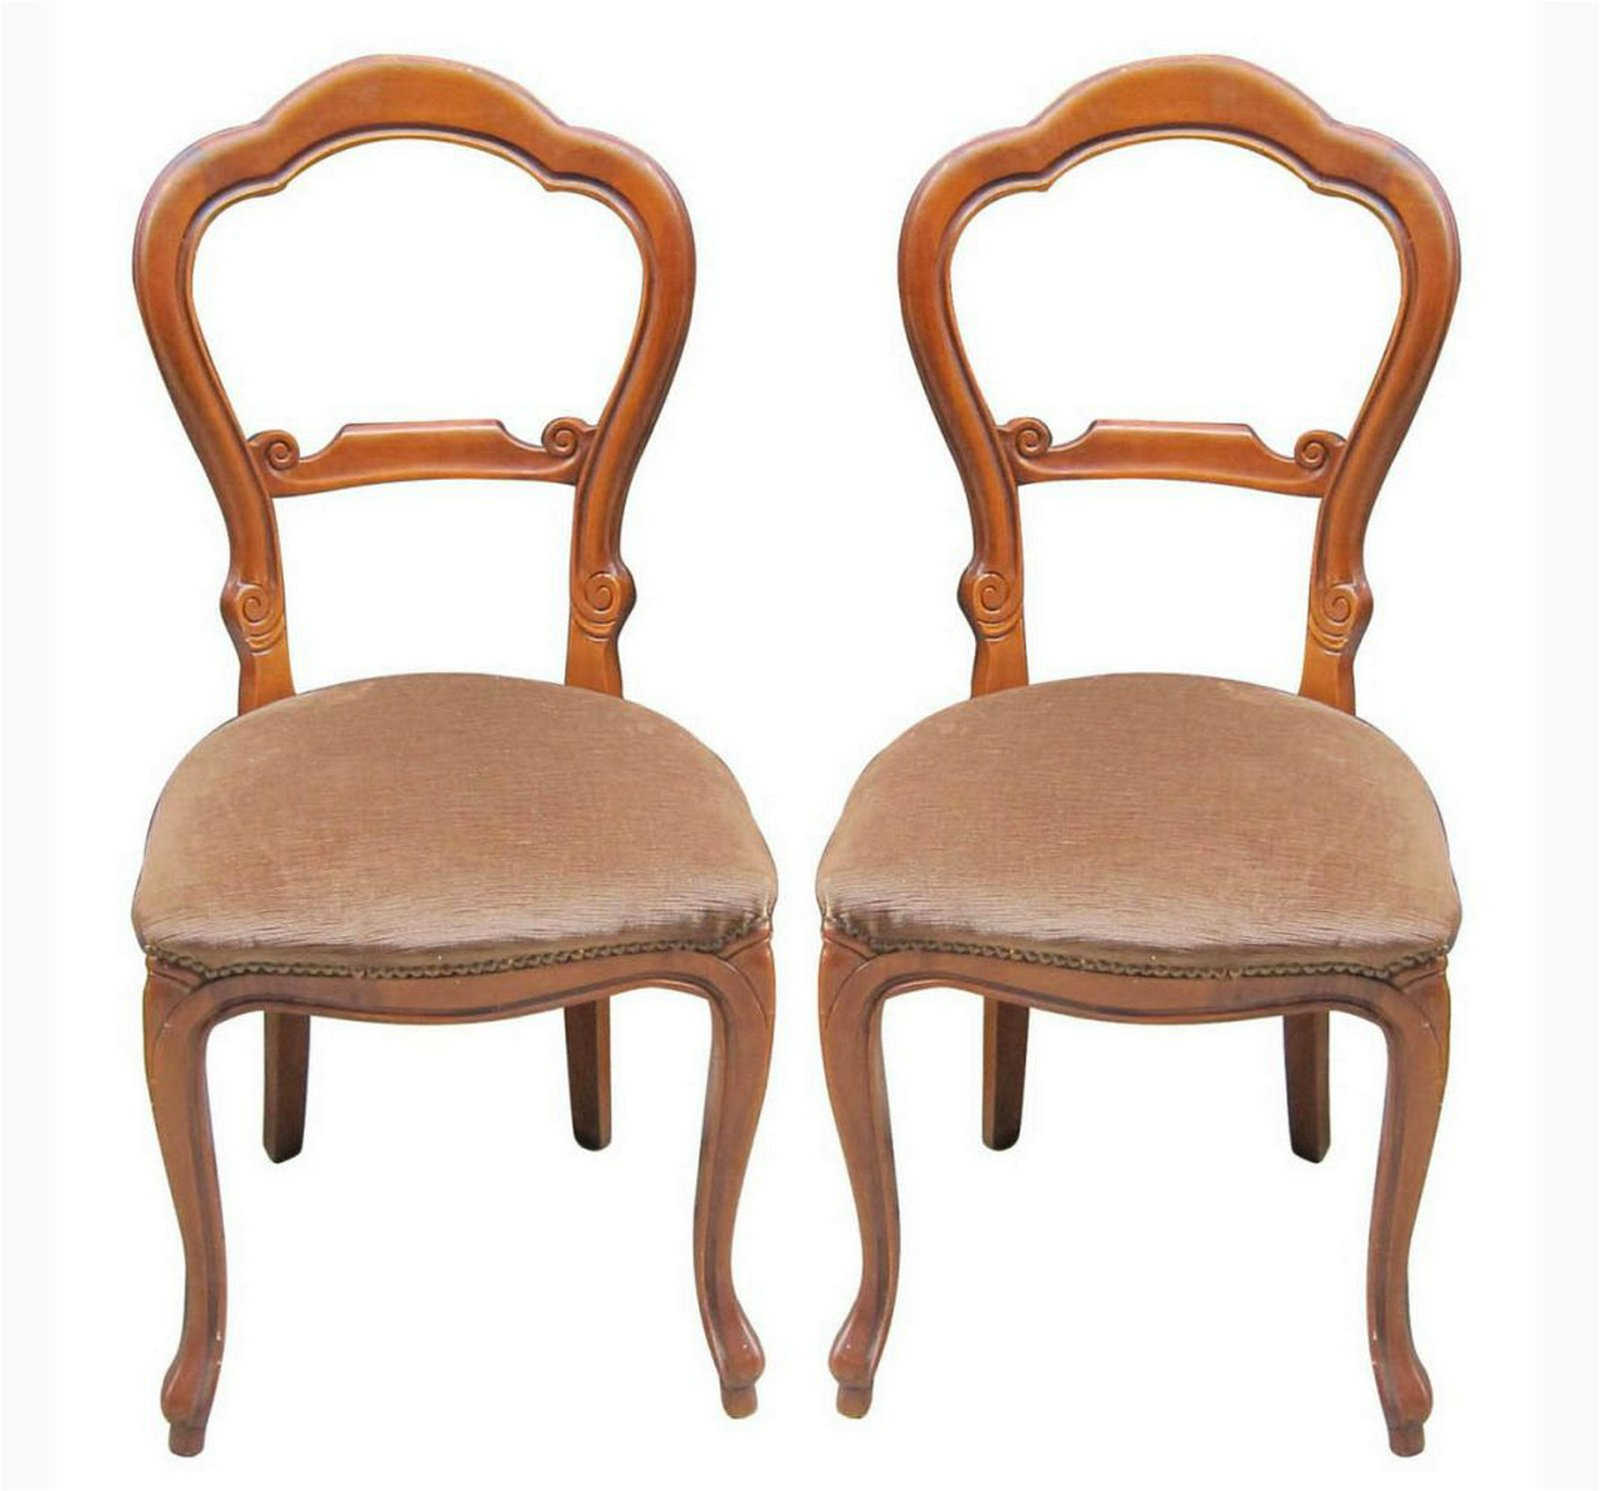 Pair of balloon-back chairs